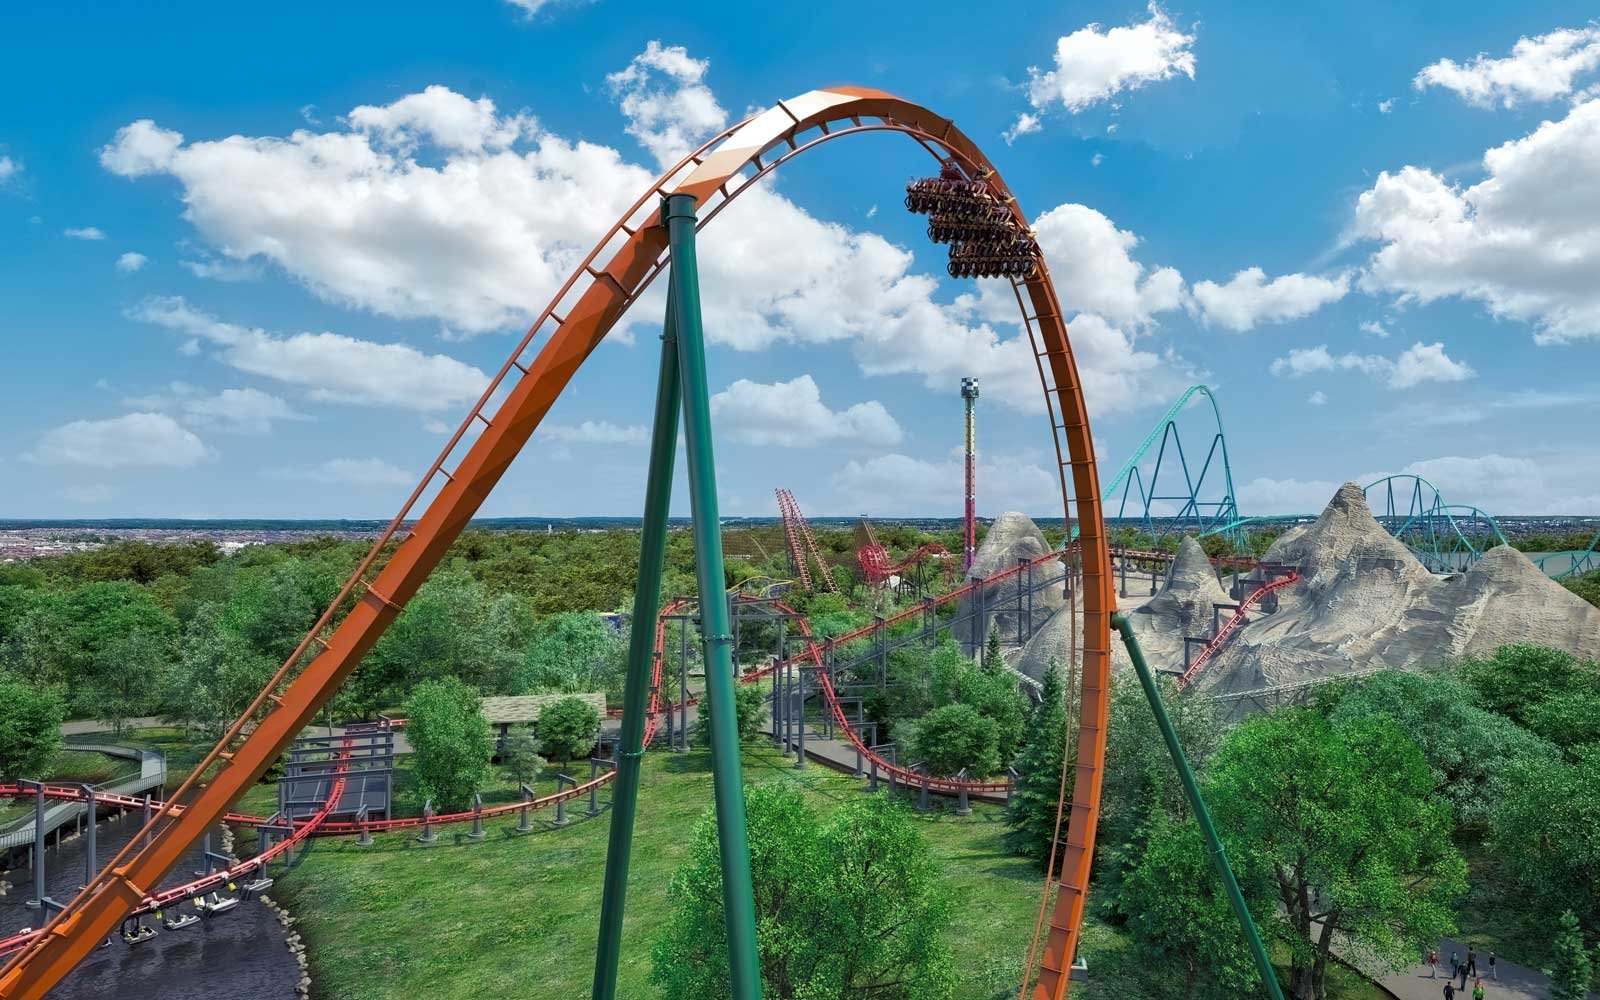 New Yukon Striker coaster at Canada's Wonderland